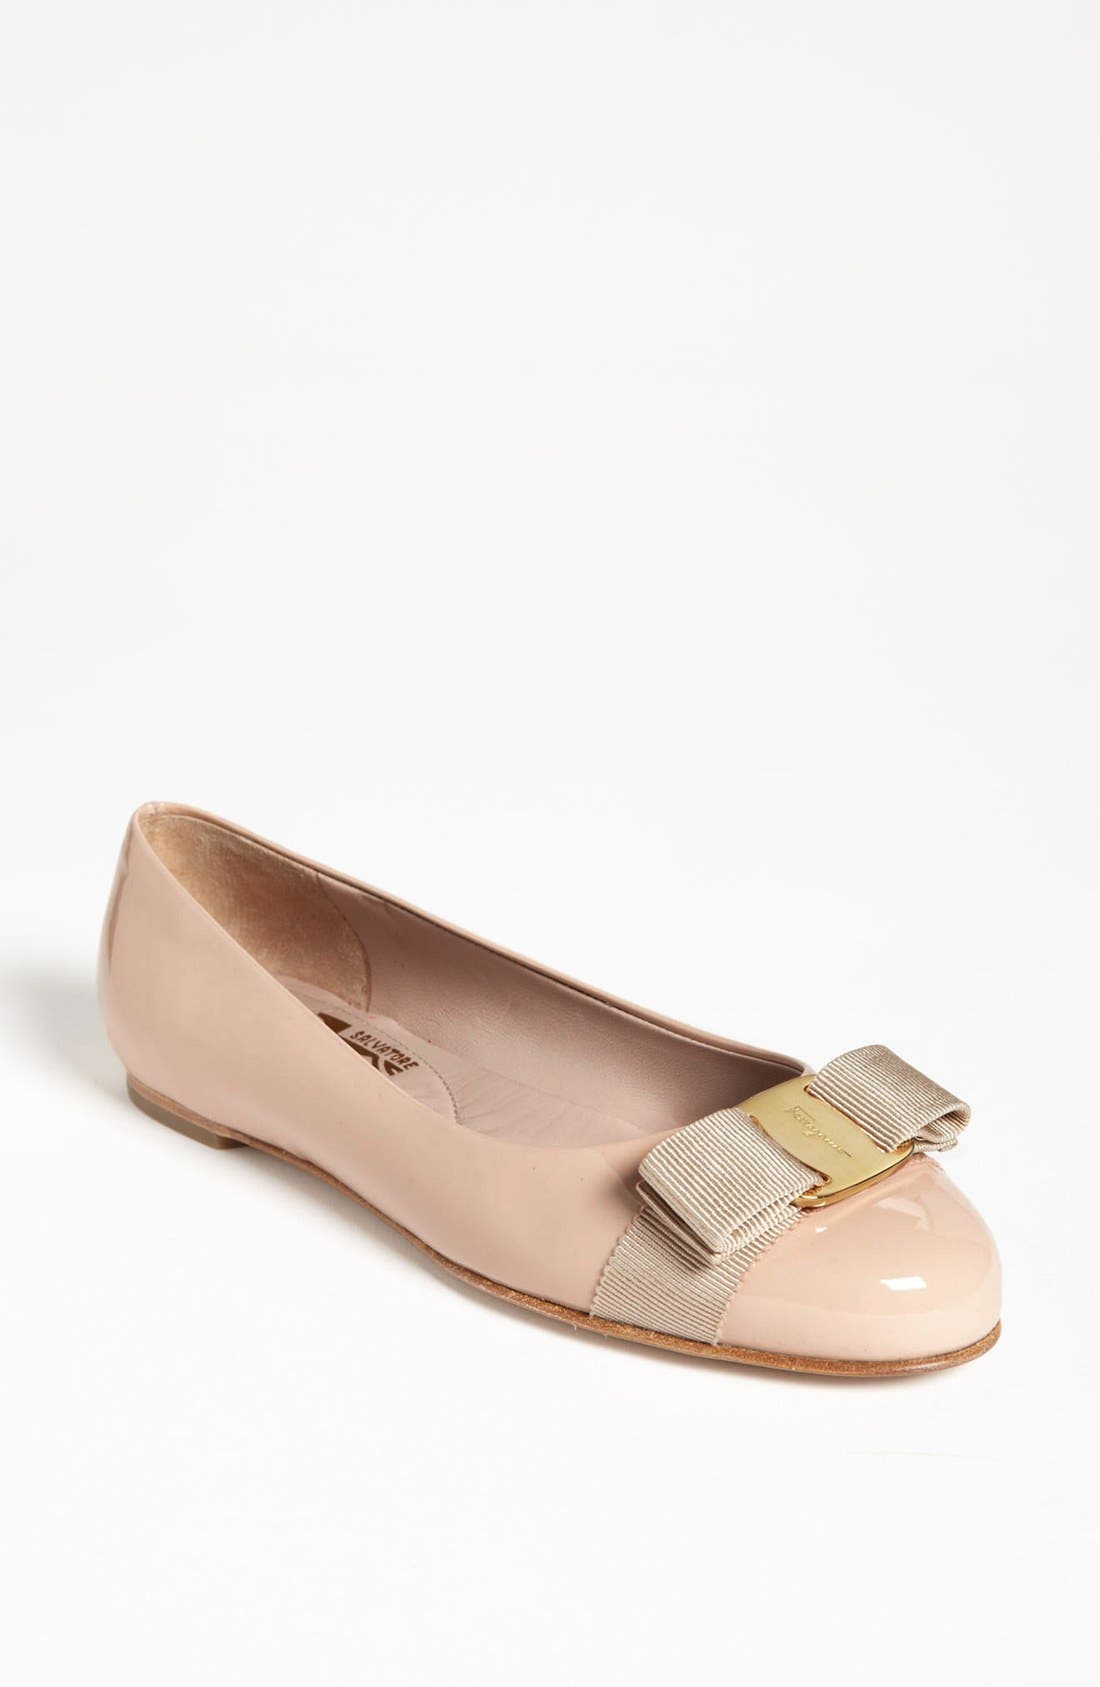 Salvatore Ferragamo 'Varina' Leather Flat (Women)